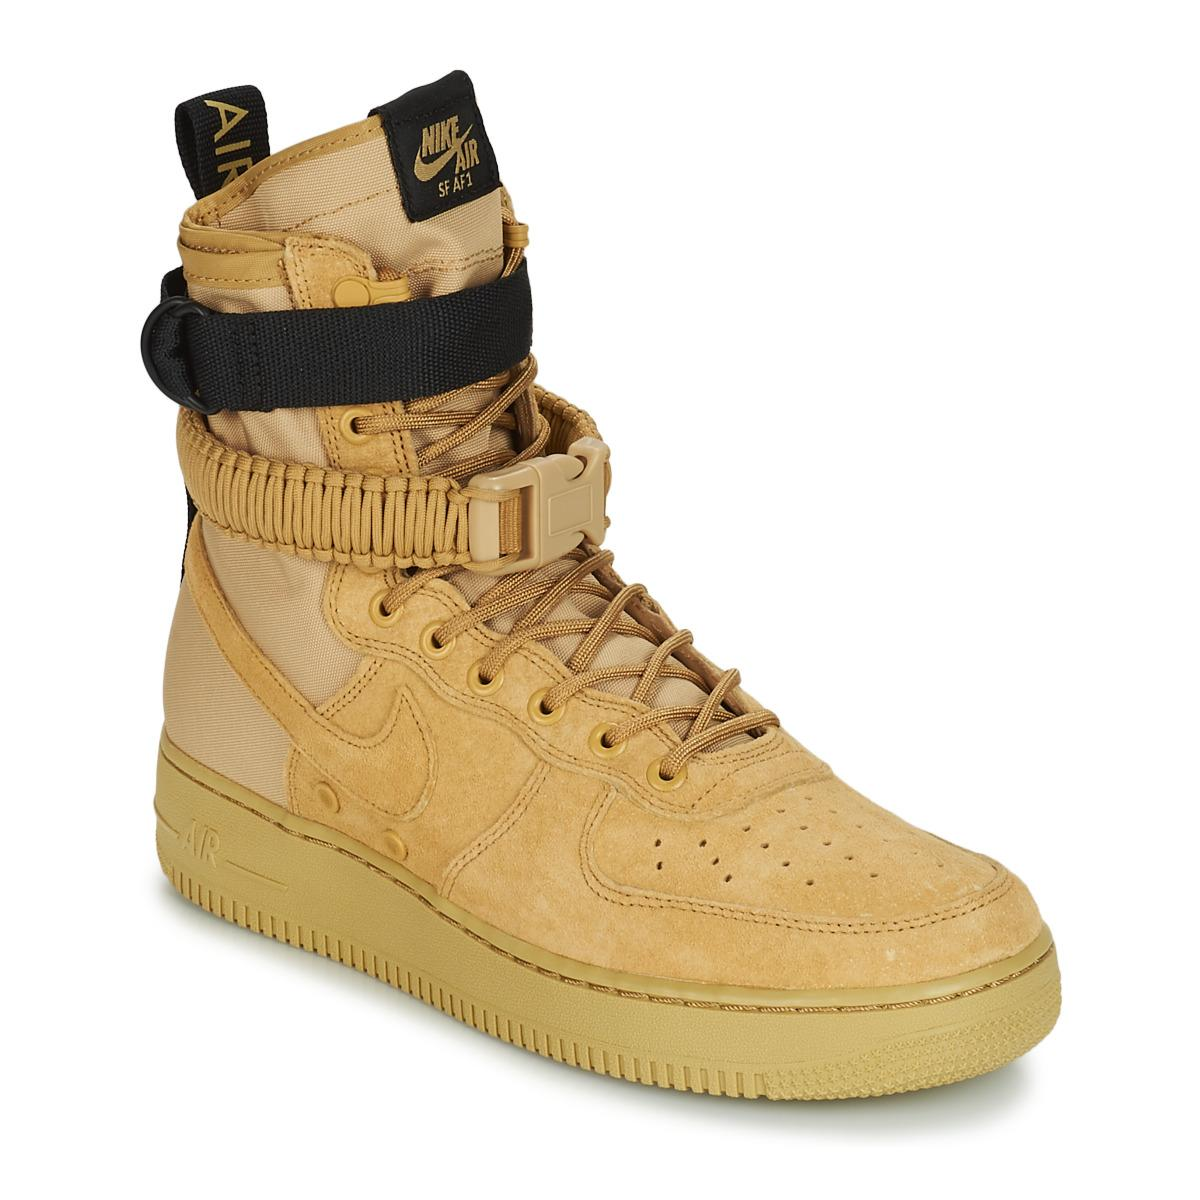 9b5881da9a6e0d Nike Sf Air Force 1 Men s Shoes (high-top Trainers) In Brown in ...